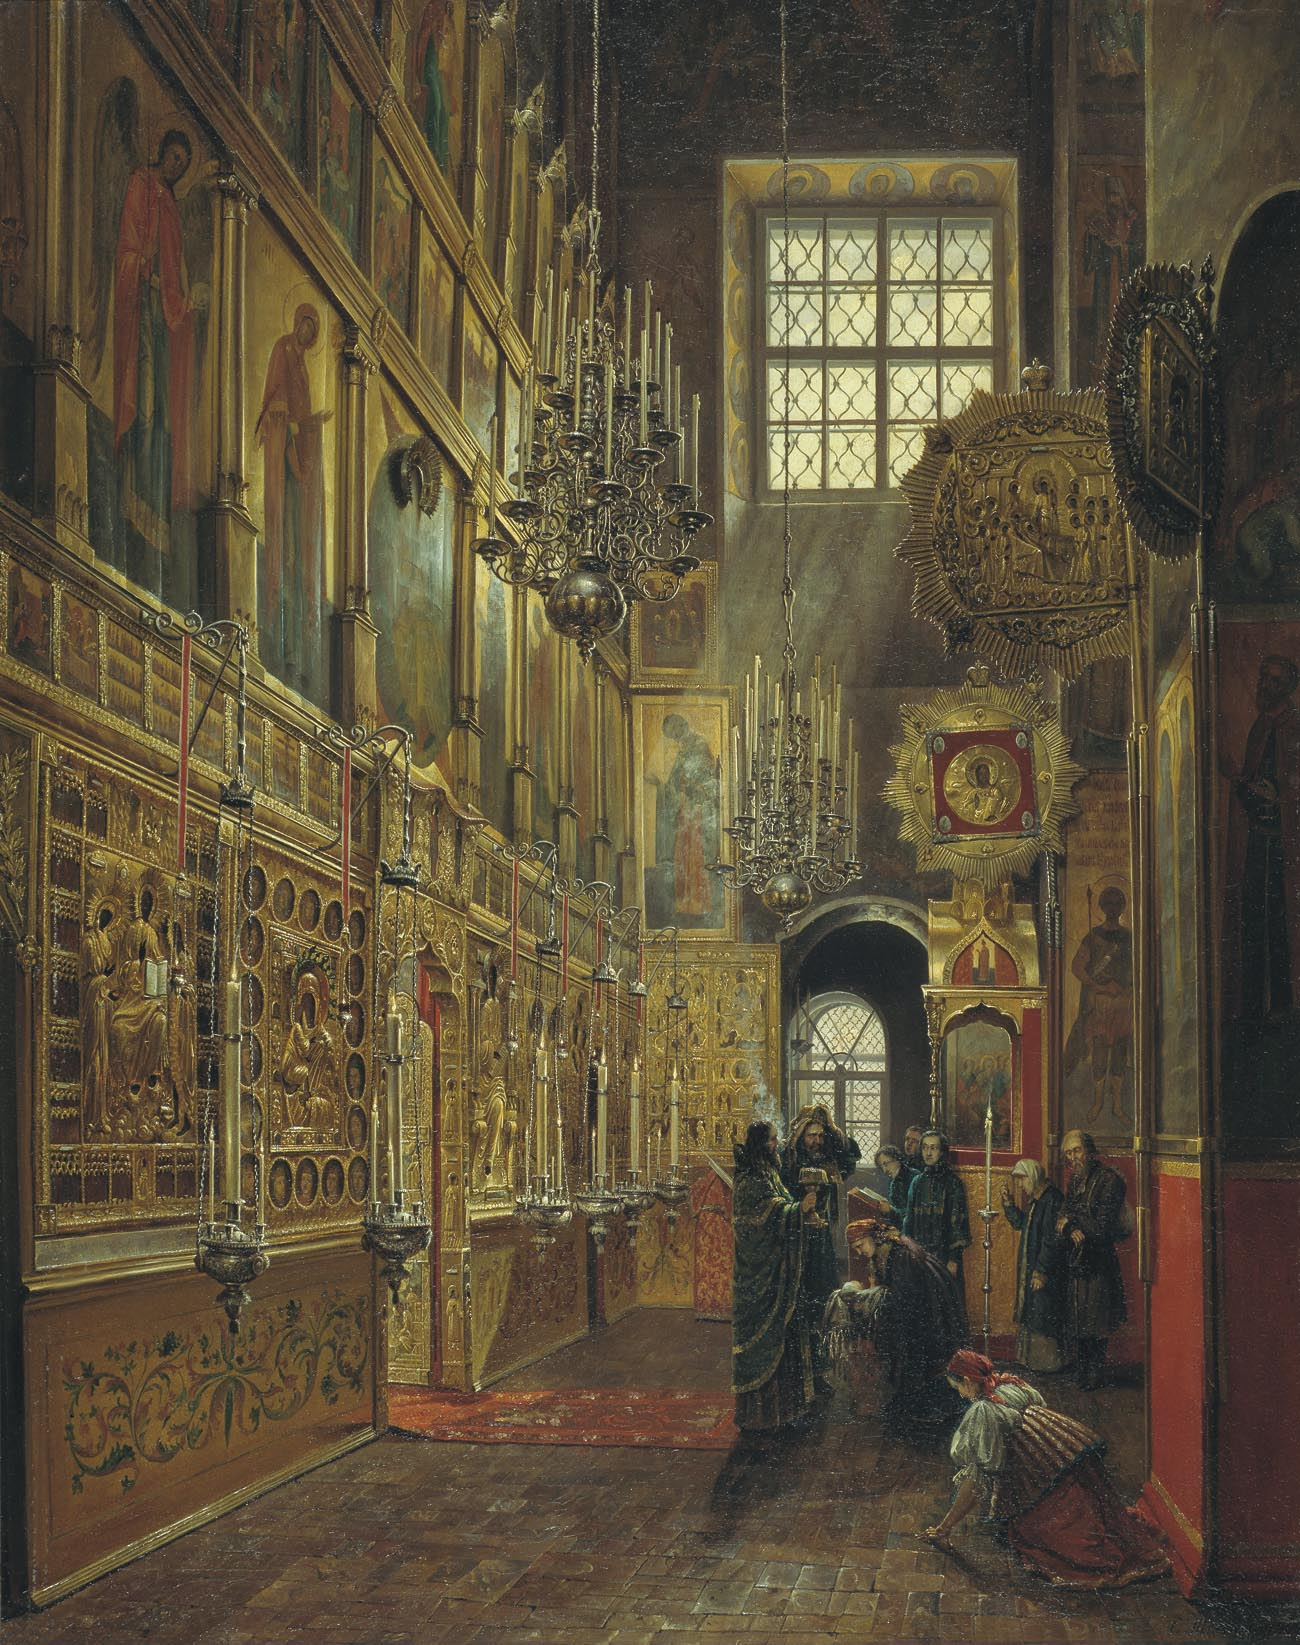 Stepan Shukhvostov (1821-1908). Church of St. Alexis in the Chudov Monastery of the Moscow Kremlin (1866)